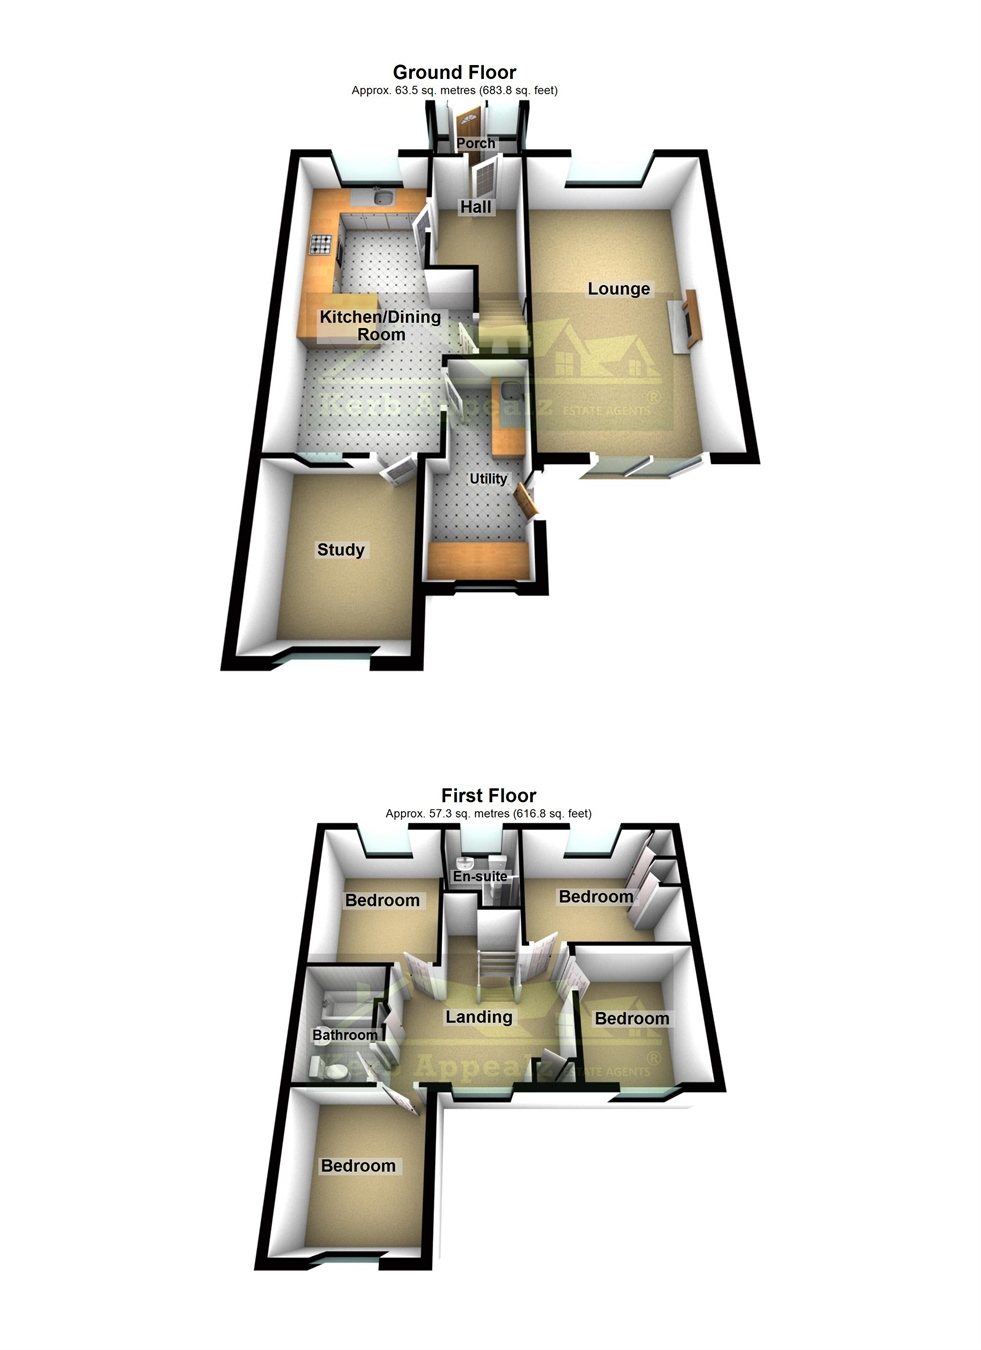 Floorplan 1 of  for sale in Pendeen